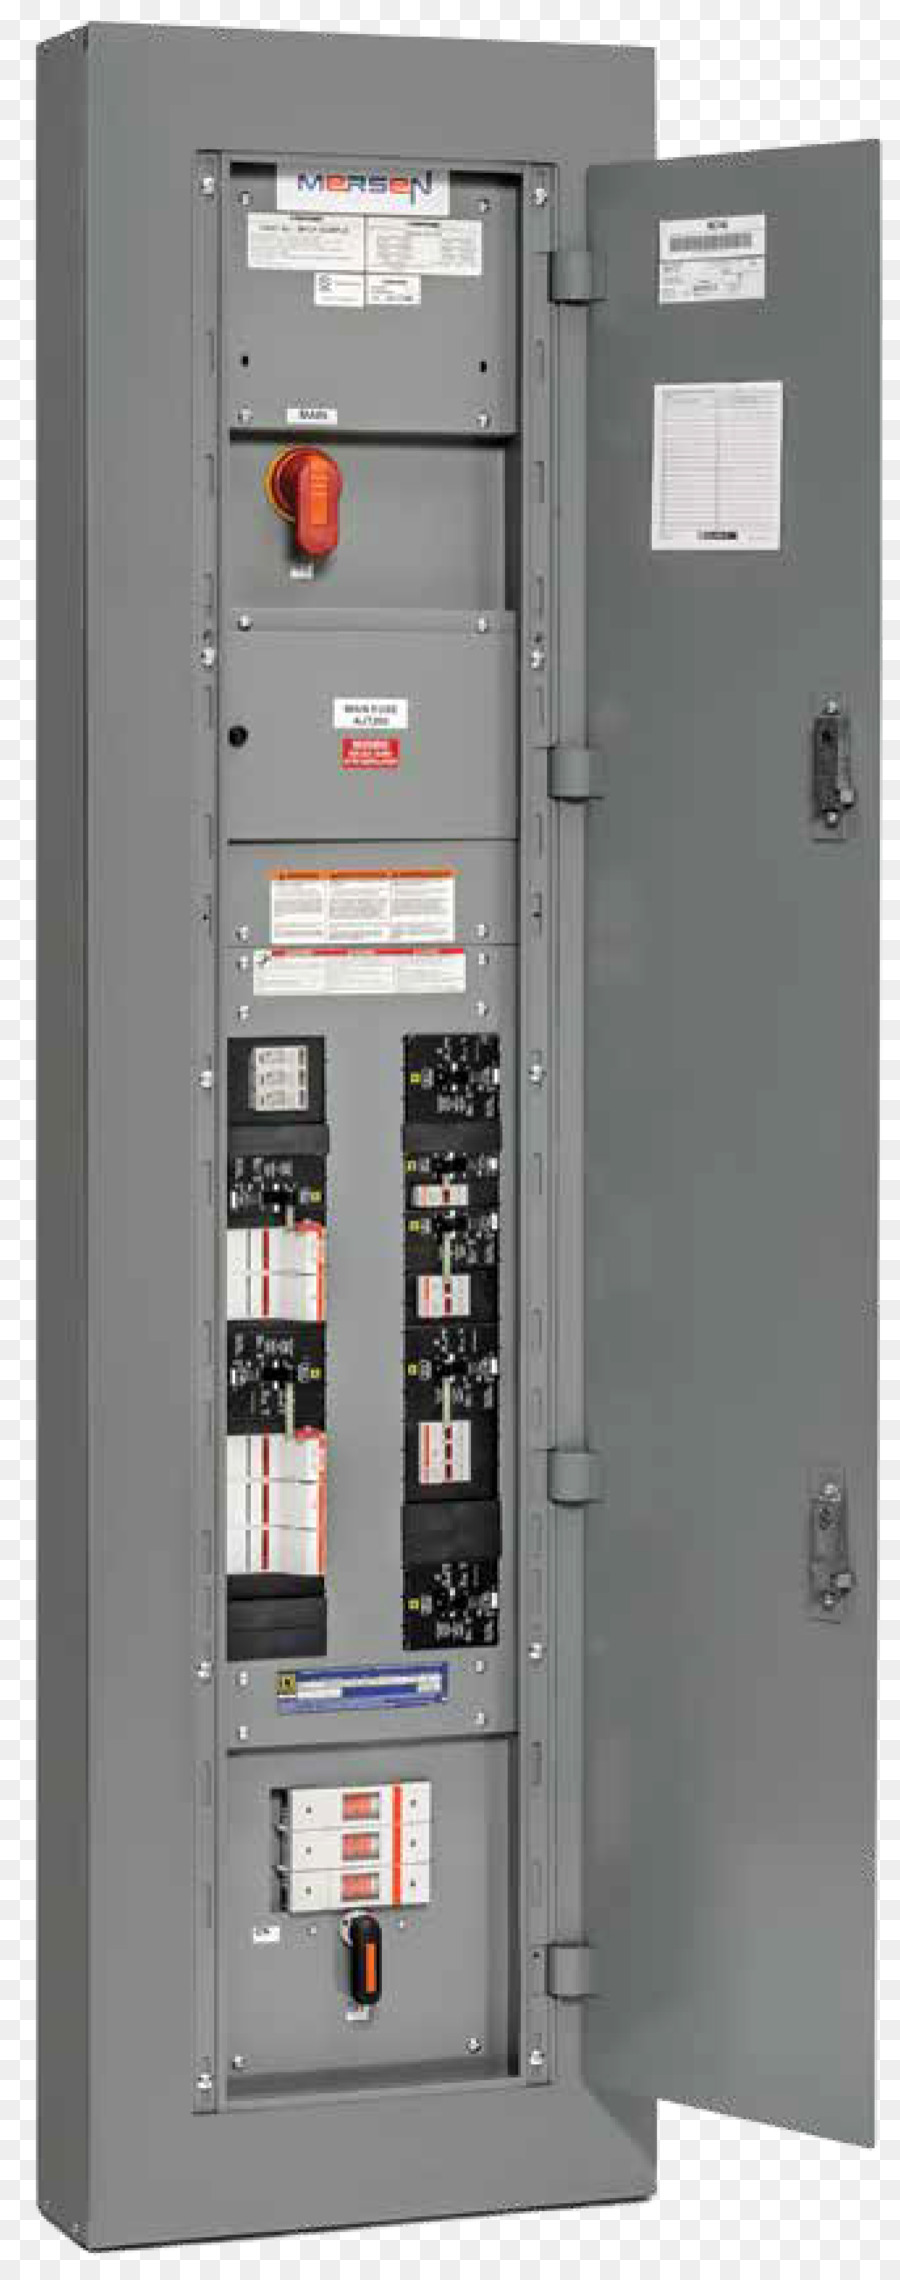 Circuit Breaker Electrical Wires Cable Wiring Diagram Panel Home Electric